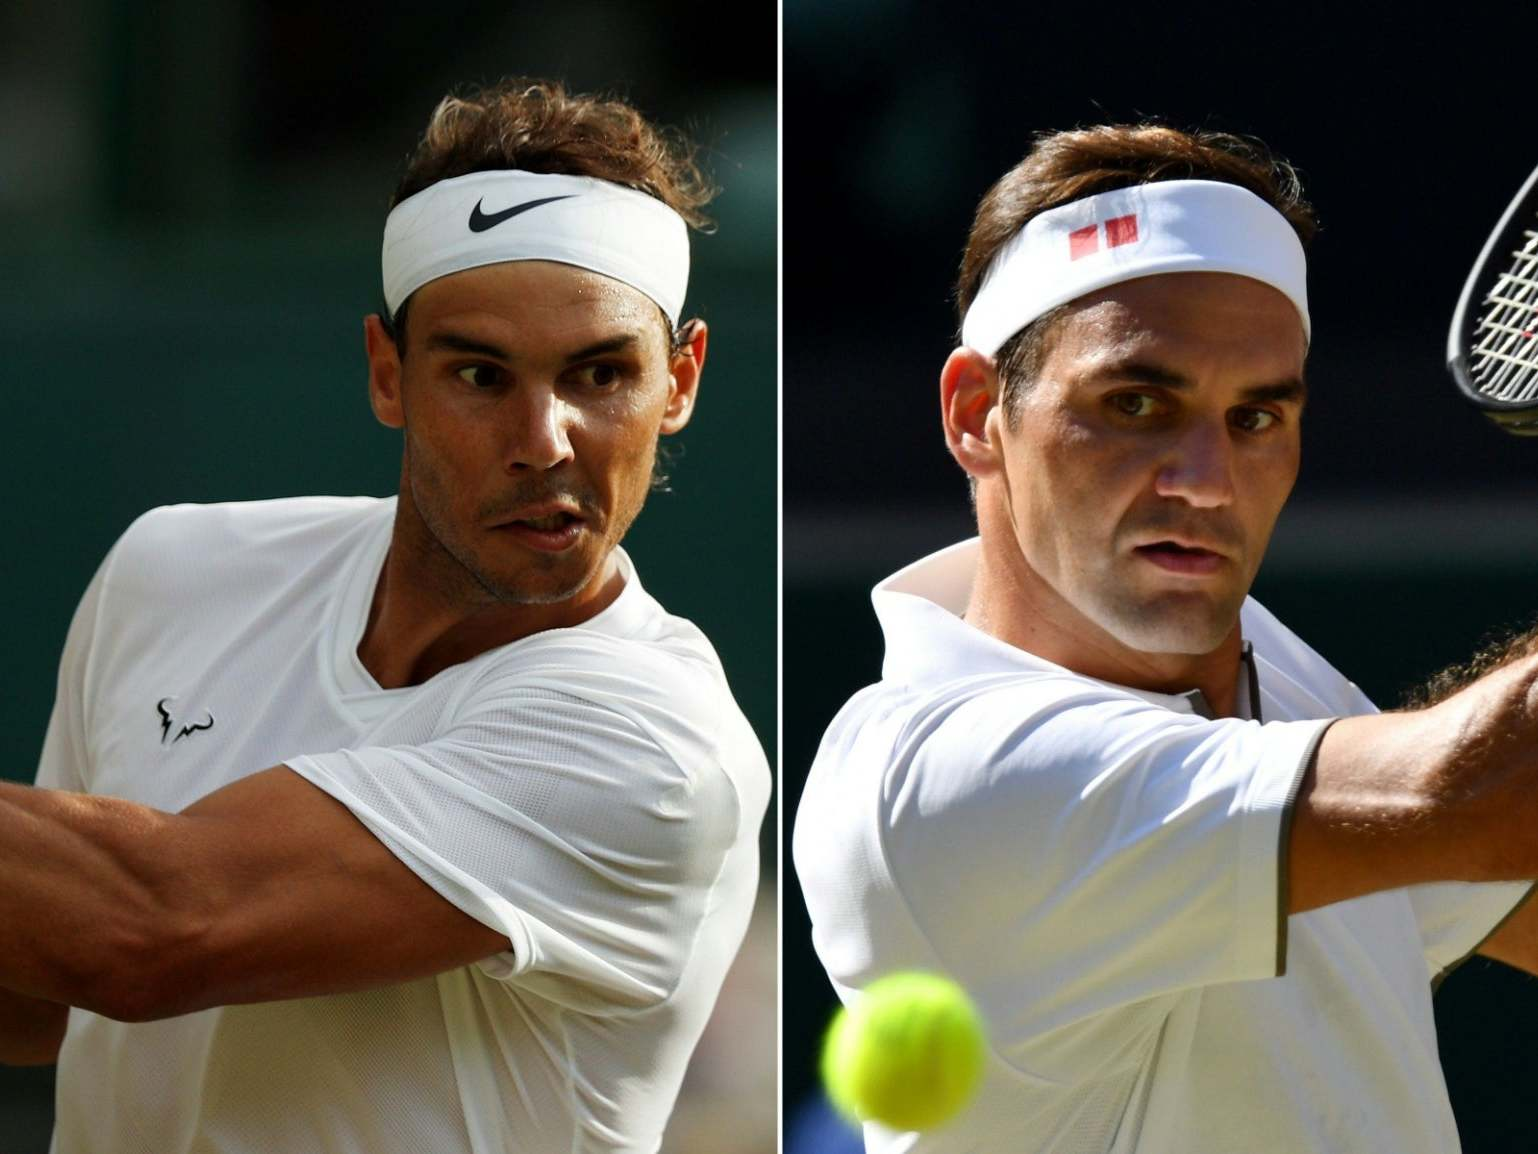 Roger Federer vs Rafael Nadal: Icons meet in Wimbledon clash of contrasts